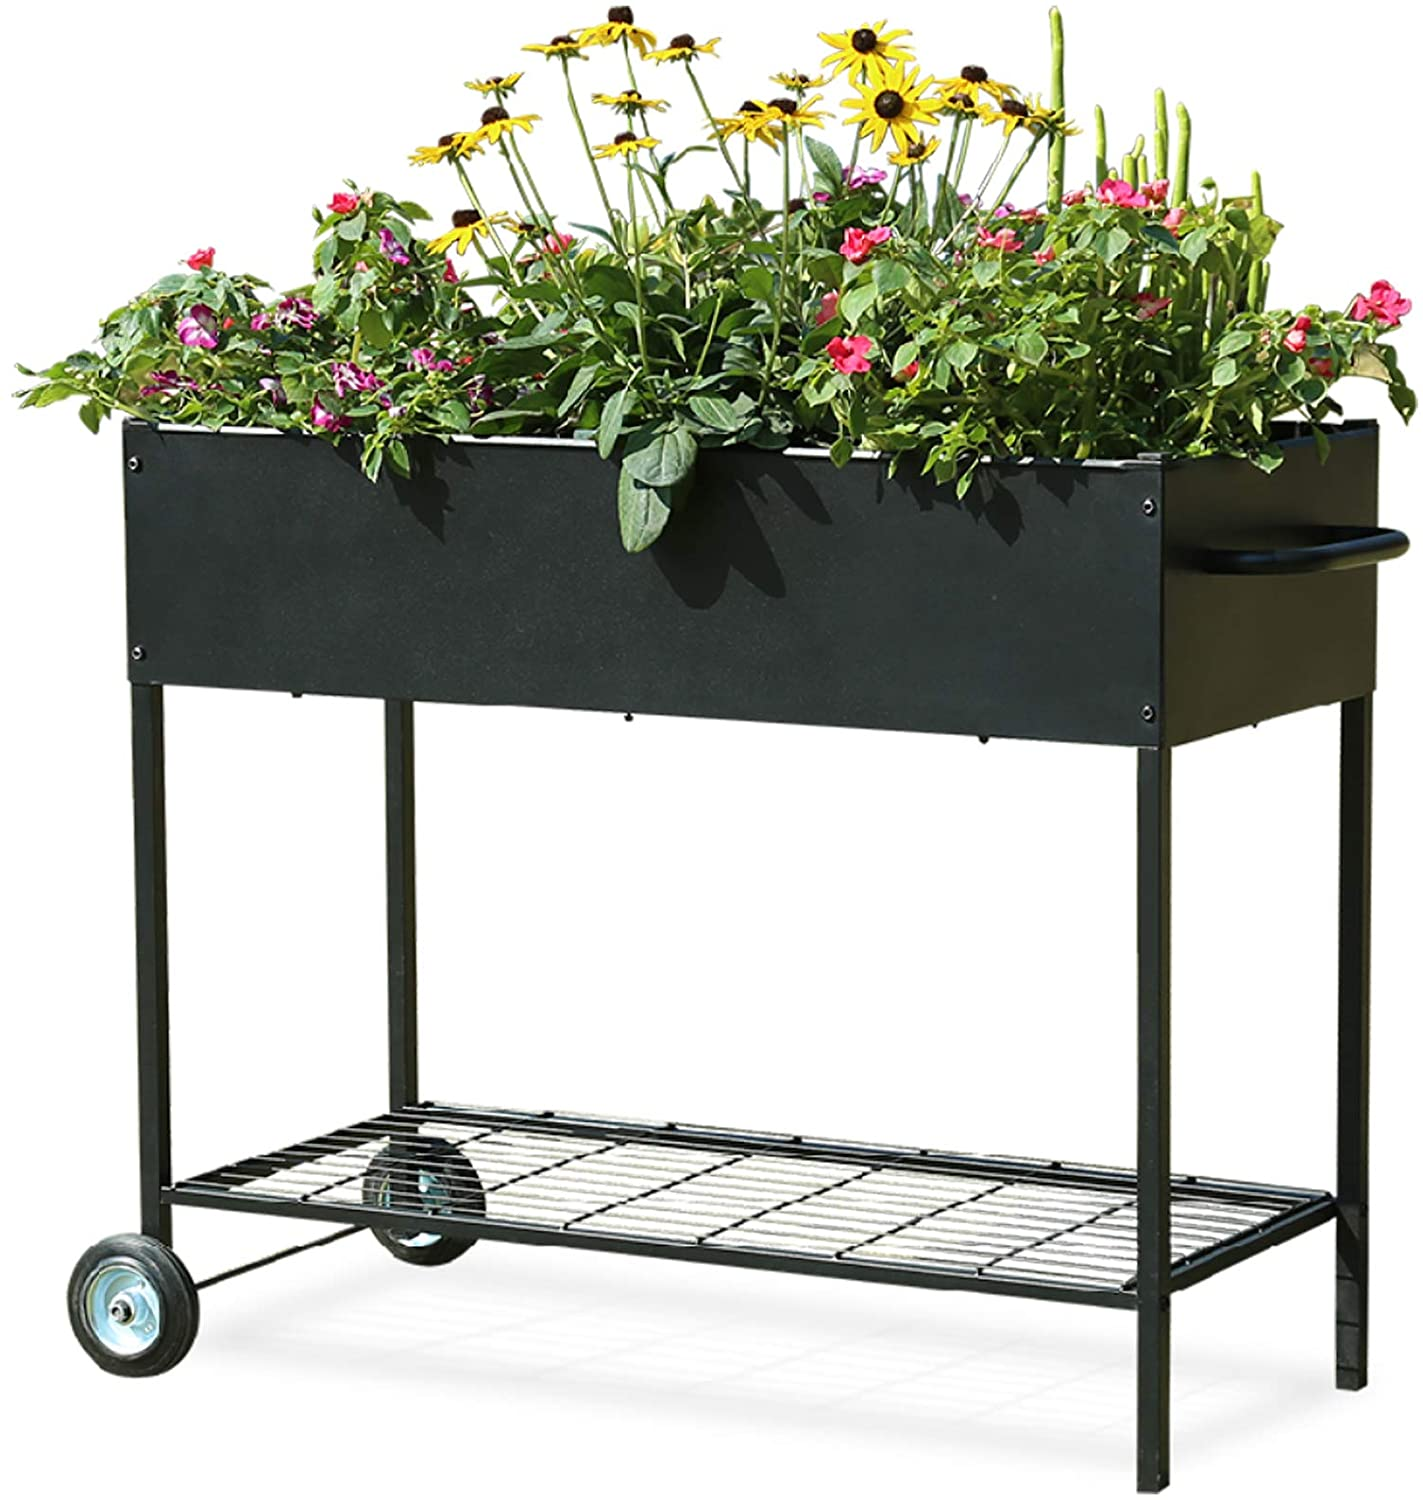 MIXC Raised Garden Boxes, Metal Elevated Outdoor Planter Box for Backyard & Patio,Large Planter for Vegetable Flower Herb,Standard Size